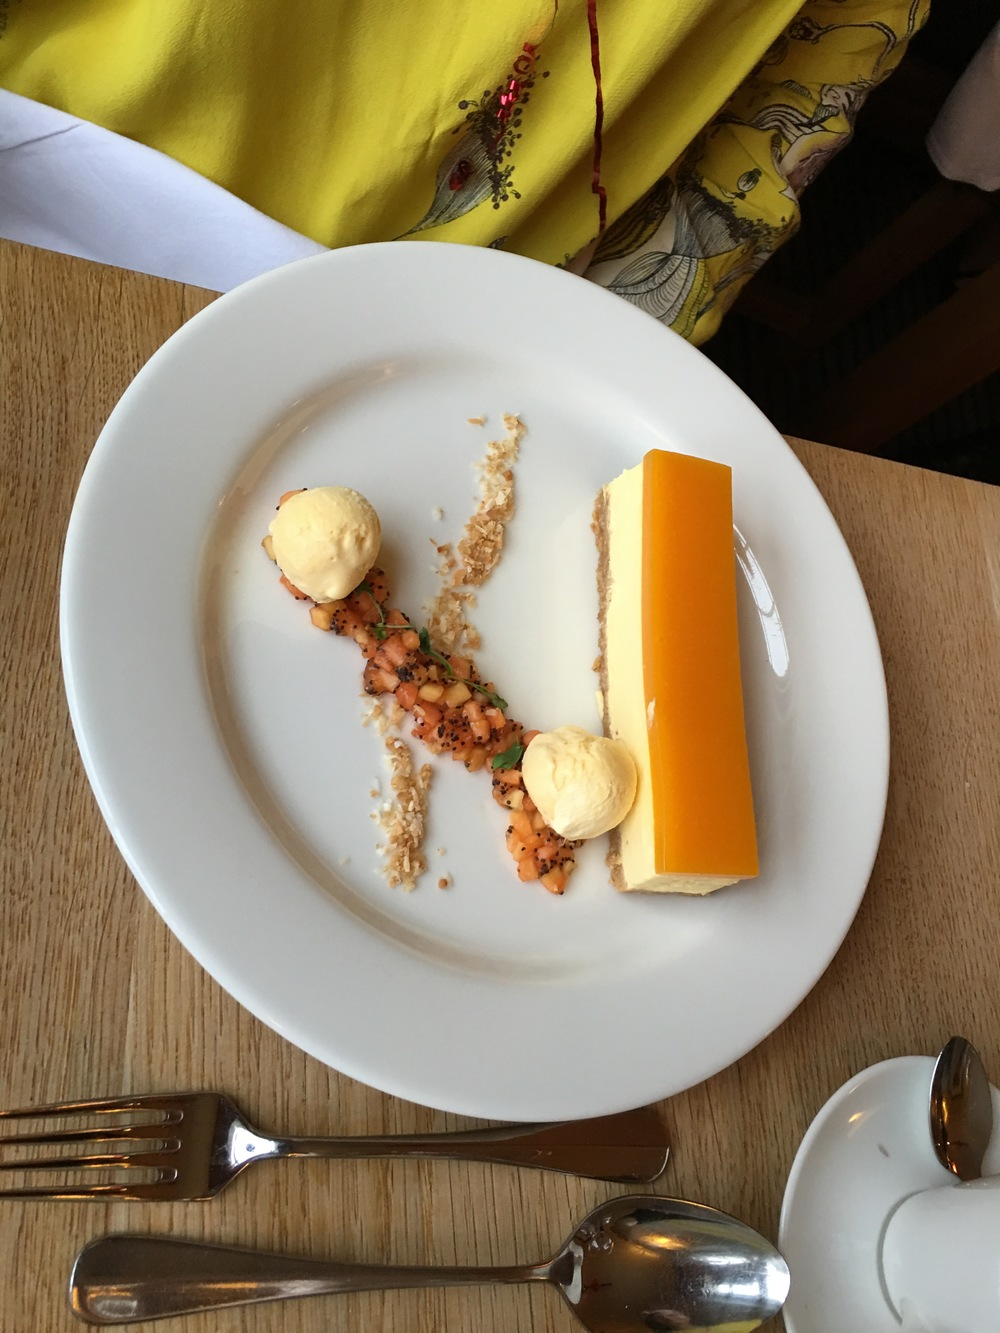 My dessert - mango cheesecake with passionfruit ice-cream and tropical fruit salsa